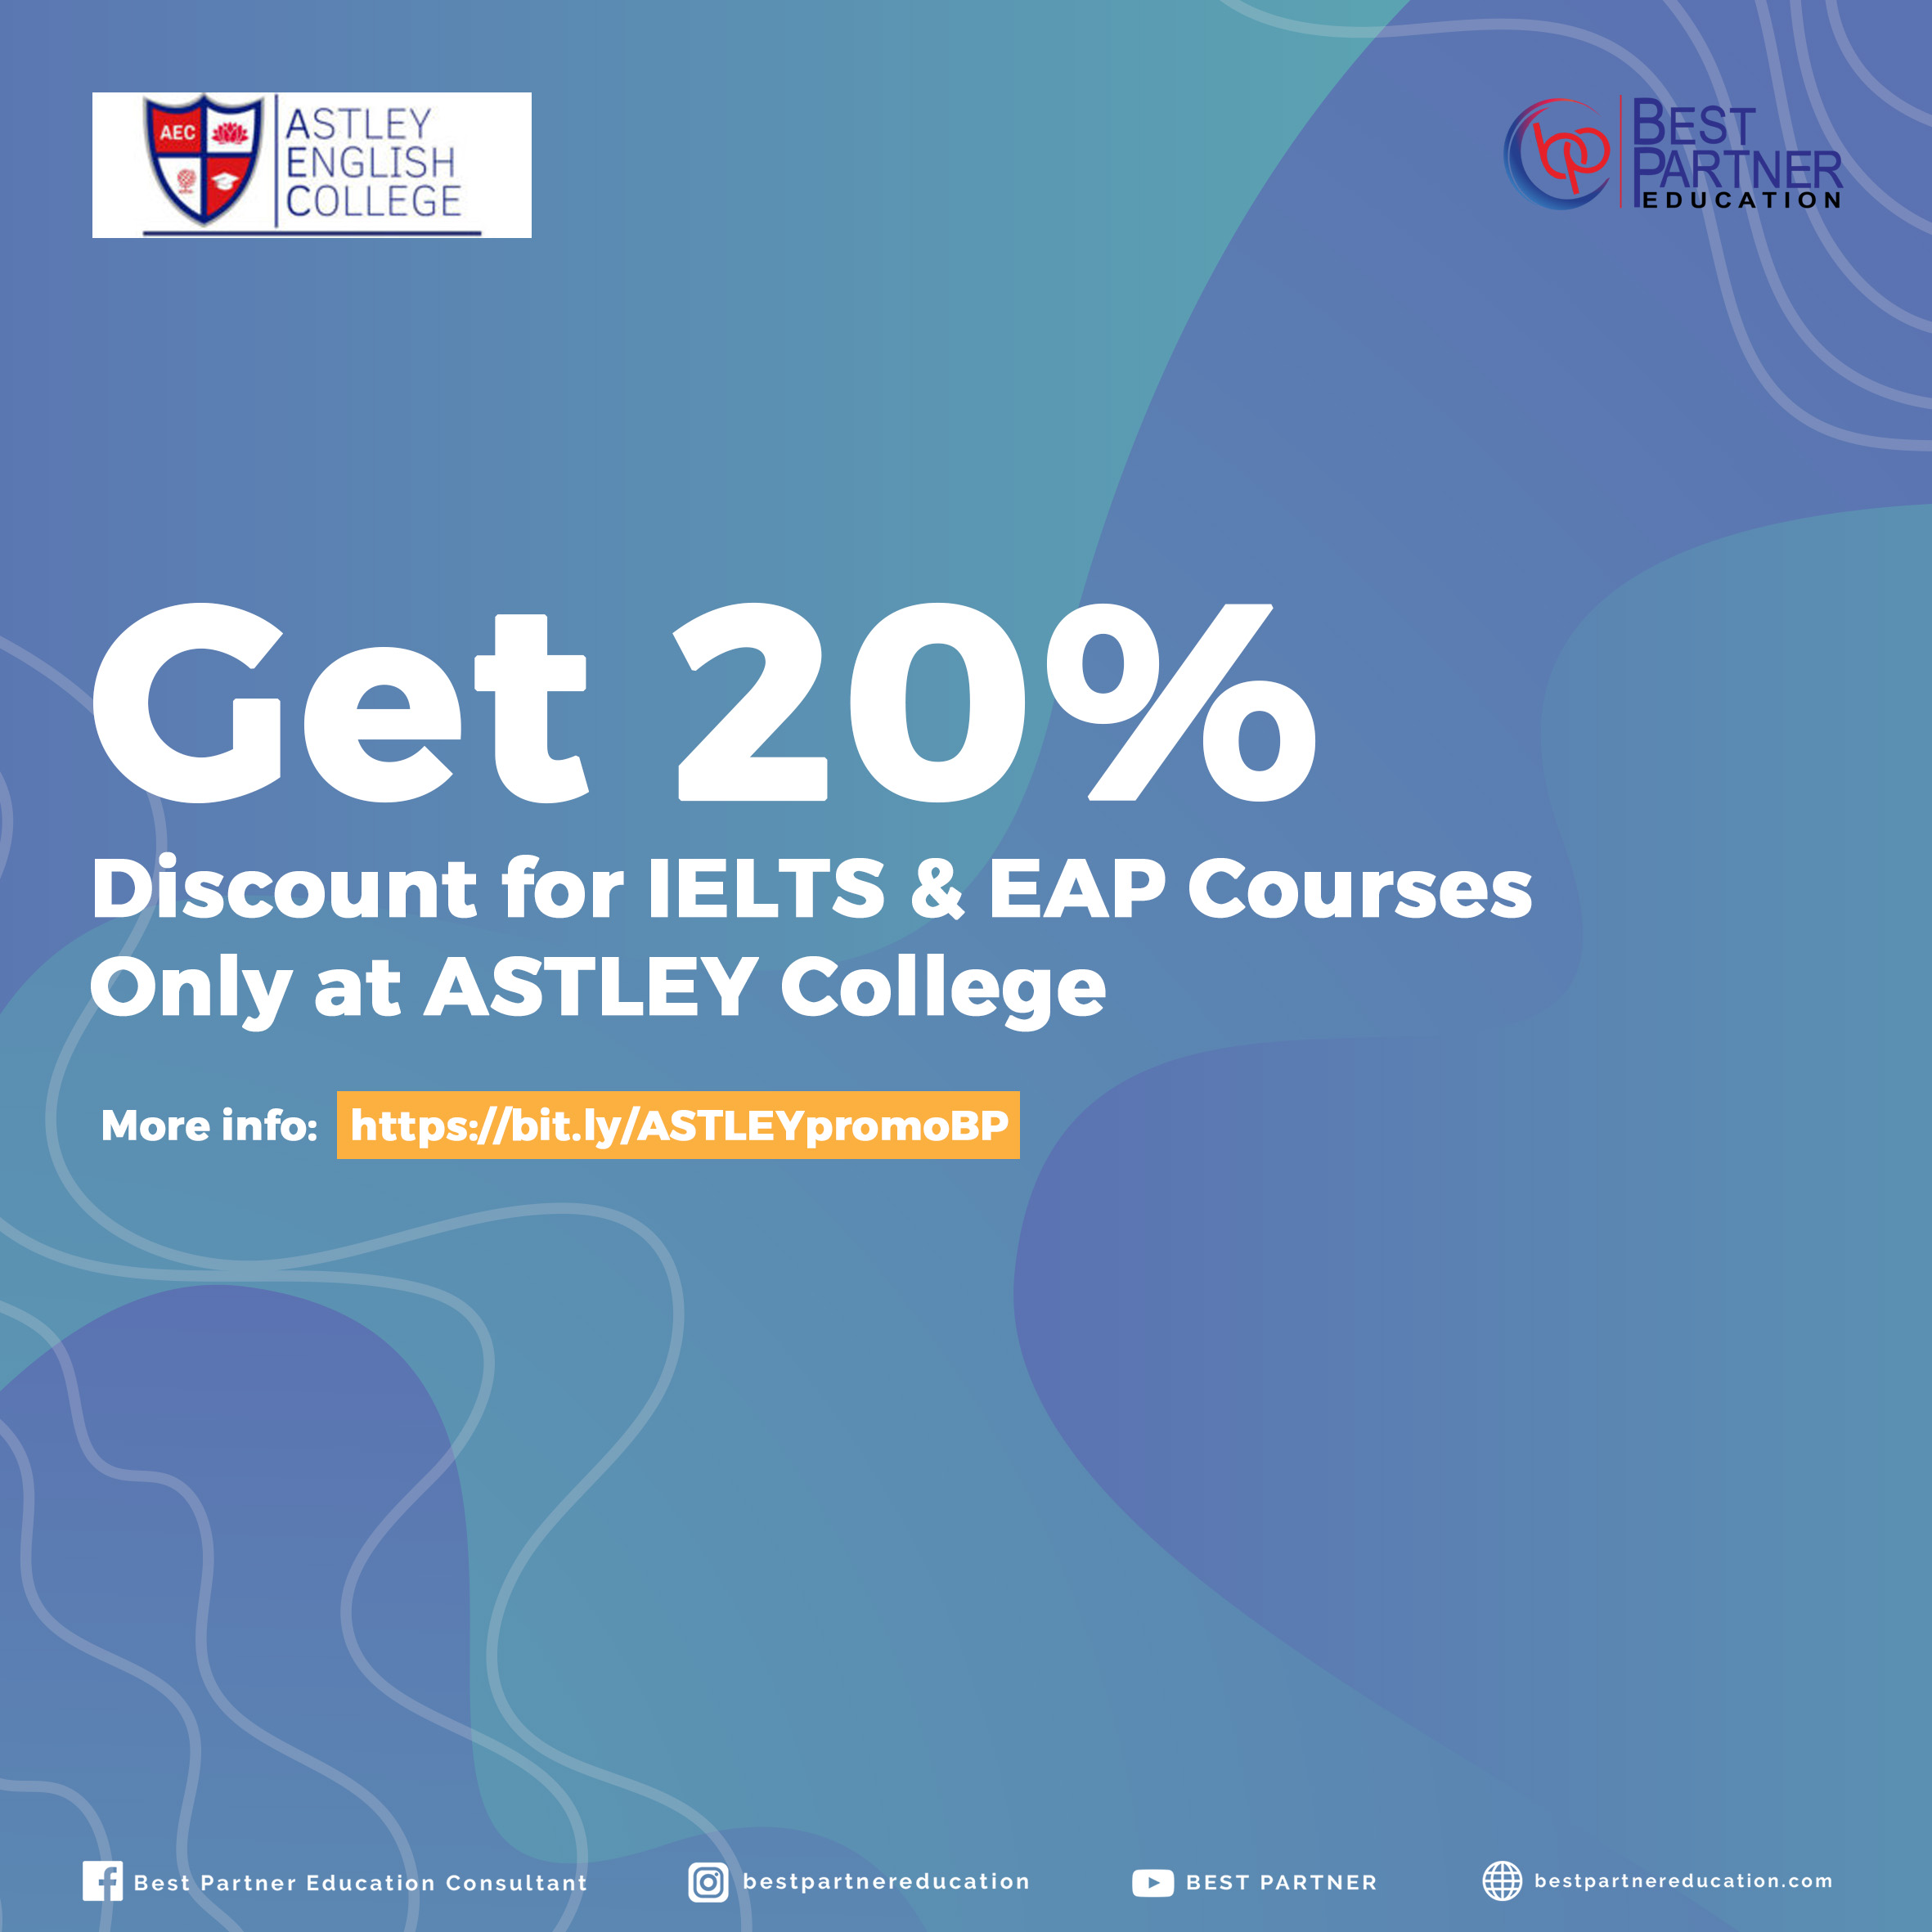 Get 20% Discount for IELTS & EAP Courses Only at ASTLEY College